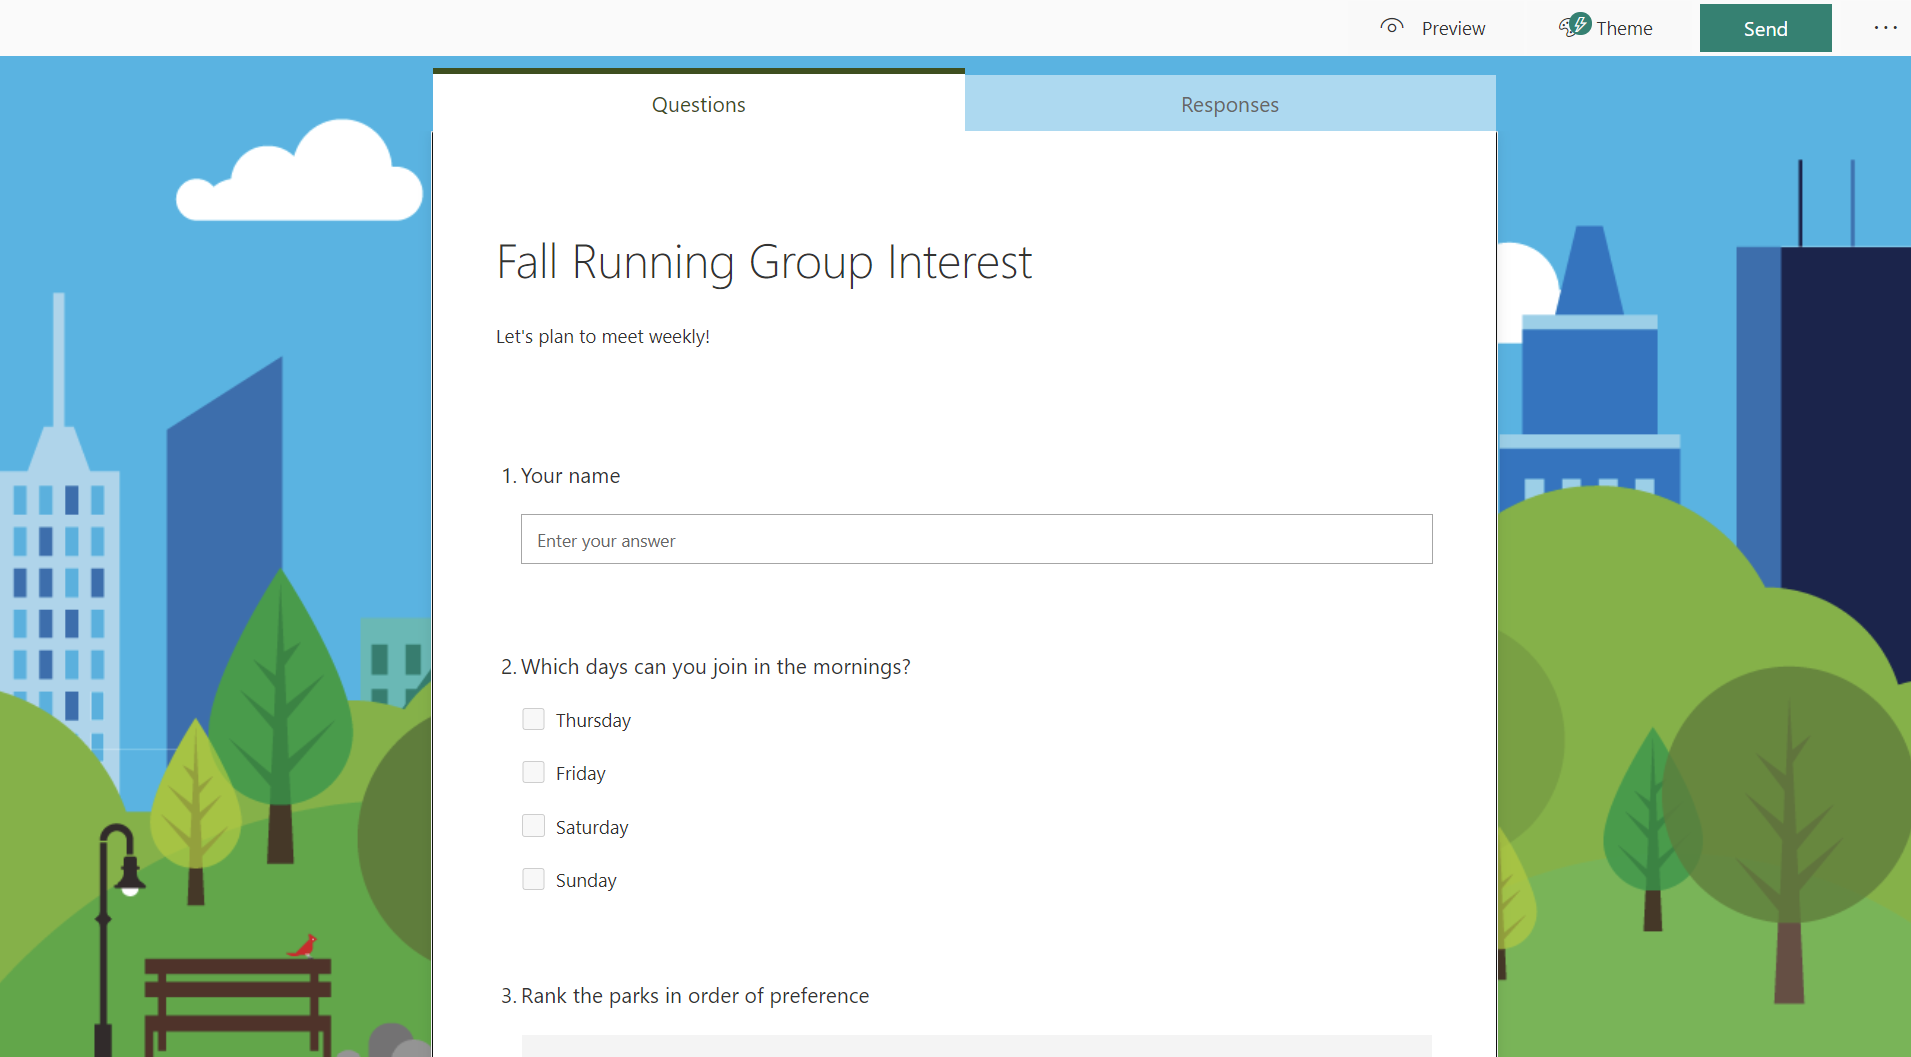 Forms Consumer Blog Falling Running Group